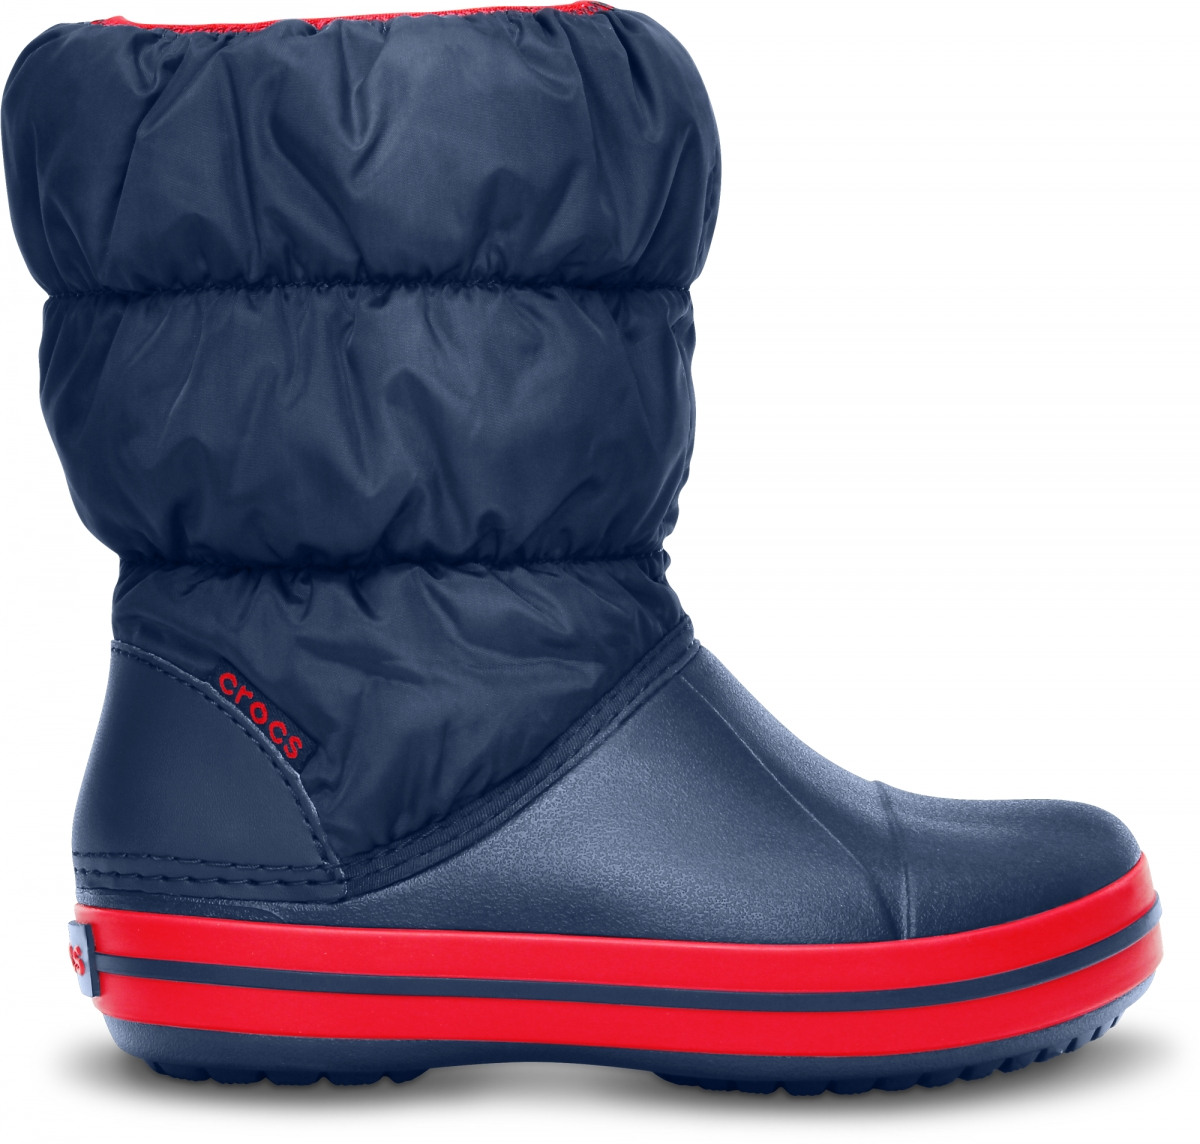 Crocs Winter Puff Boot Kids - Navy/Red, C10 (27-28)